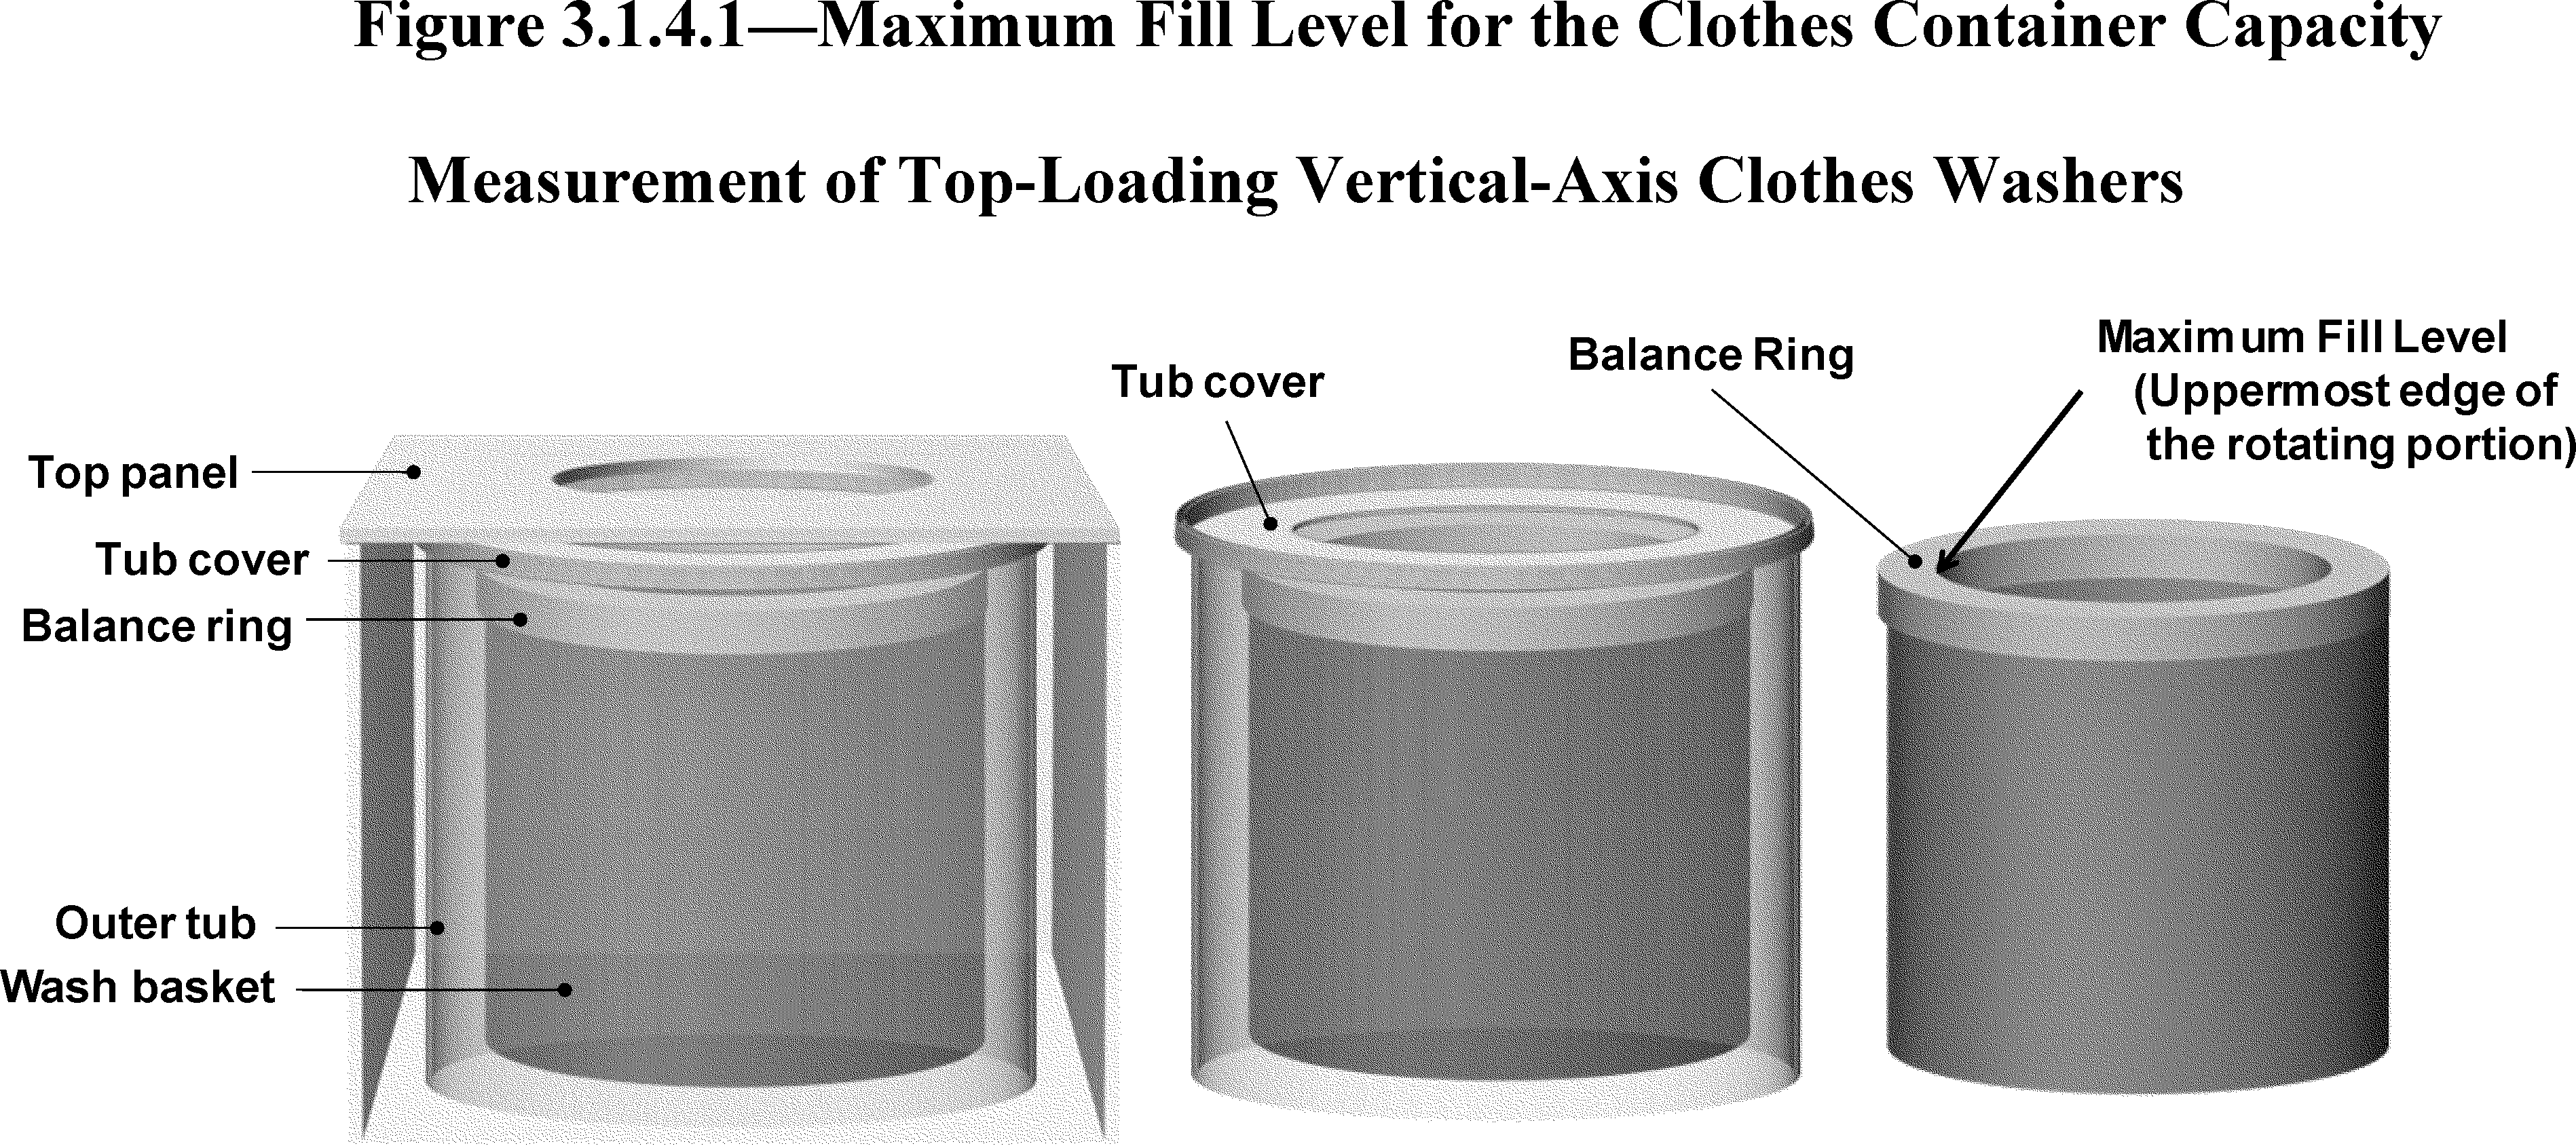 Federal register energy conservation program test procedures for figure 3141 of this appendix illustrates the maximum fill level for top loading clothes washers buycottarizona Gallery